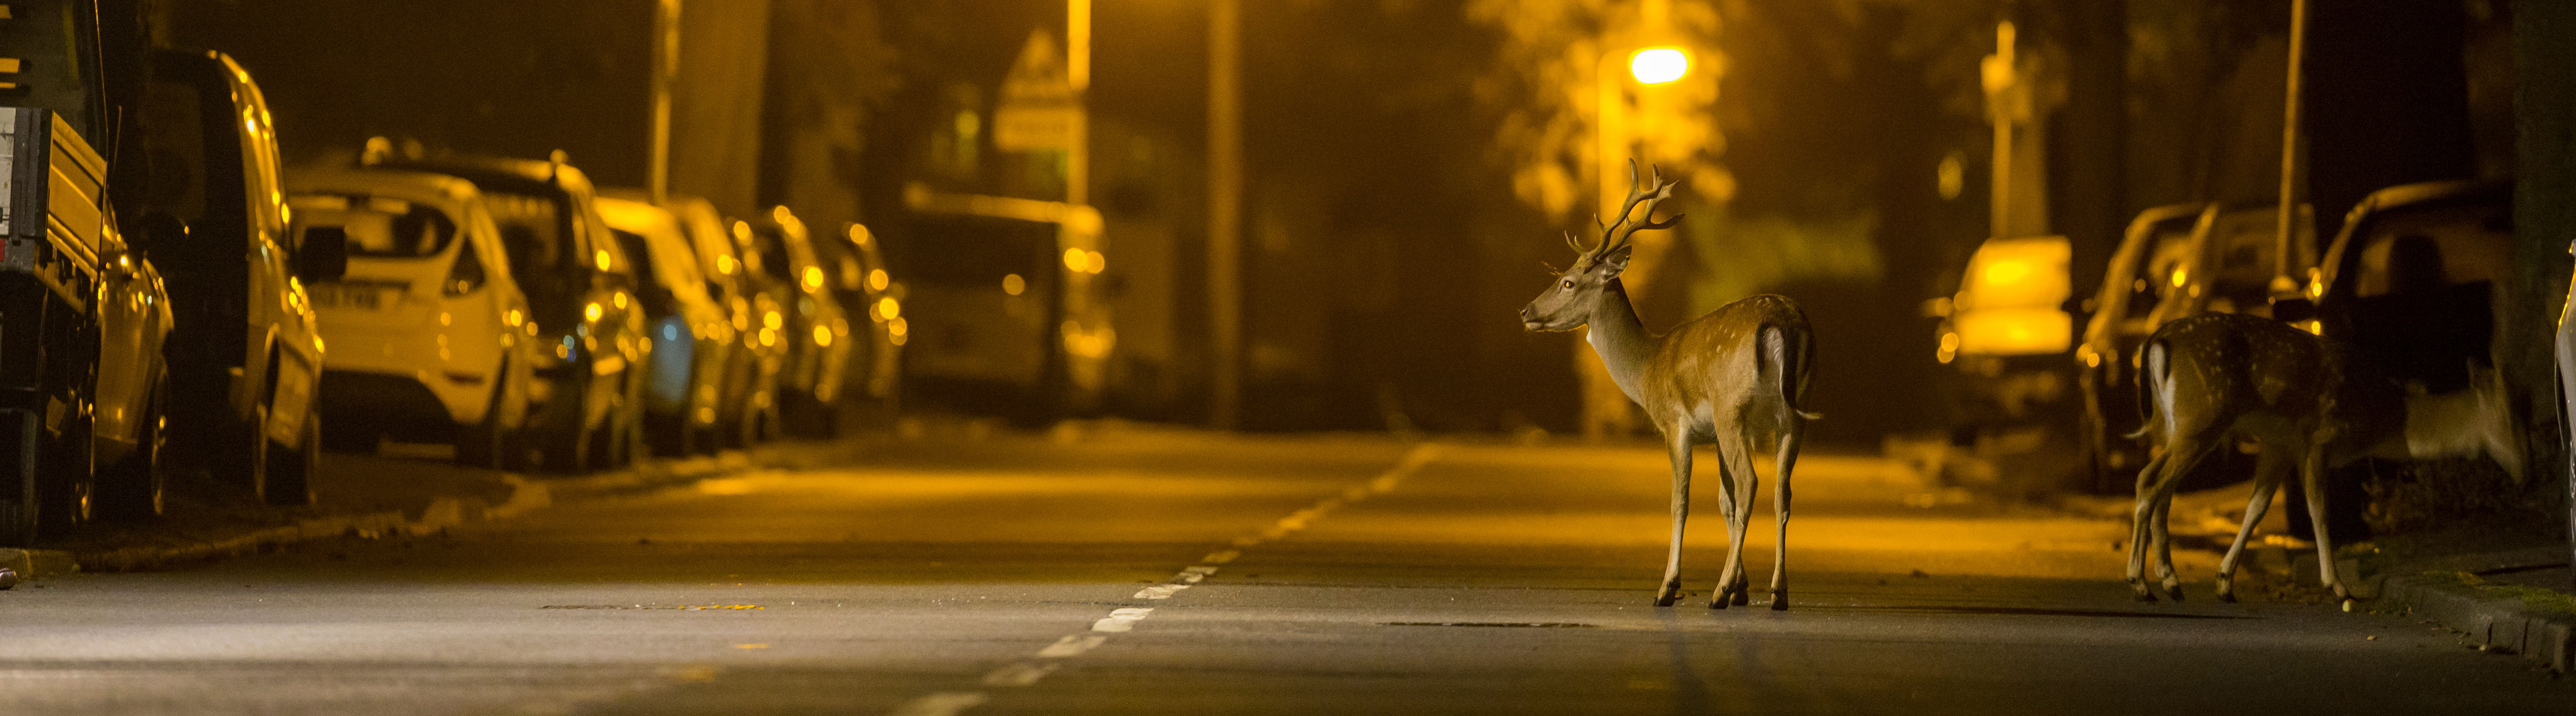 two deer stand in an urban street at night under street lamps